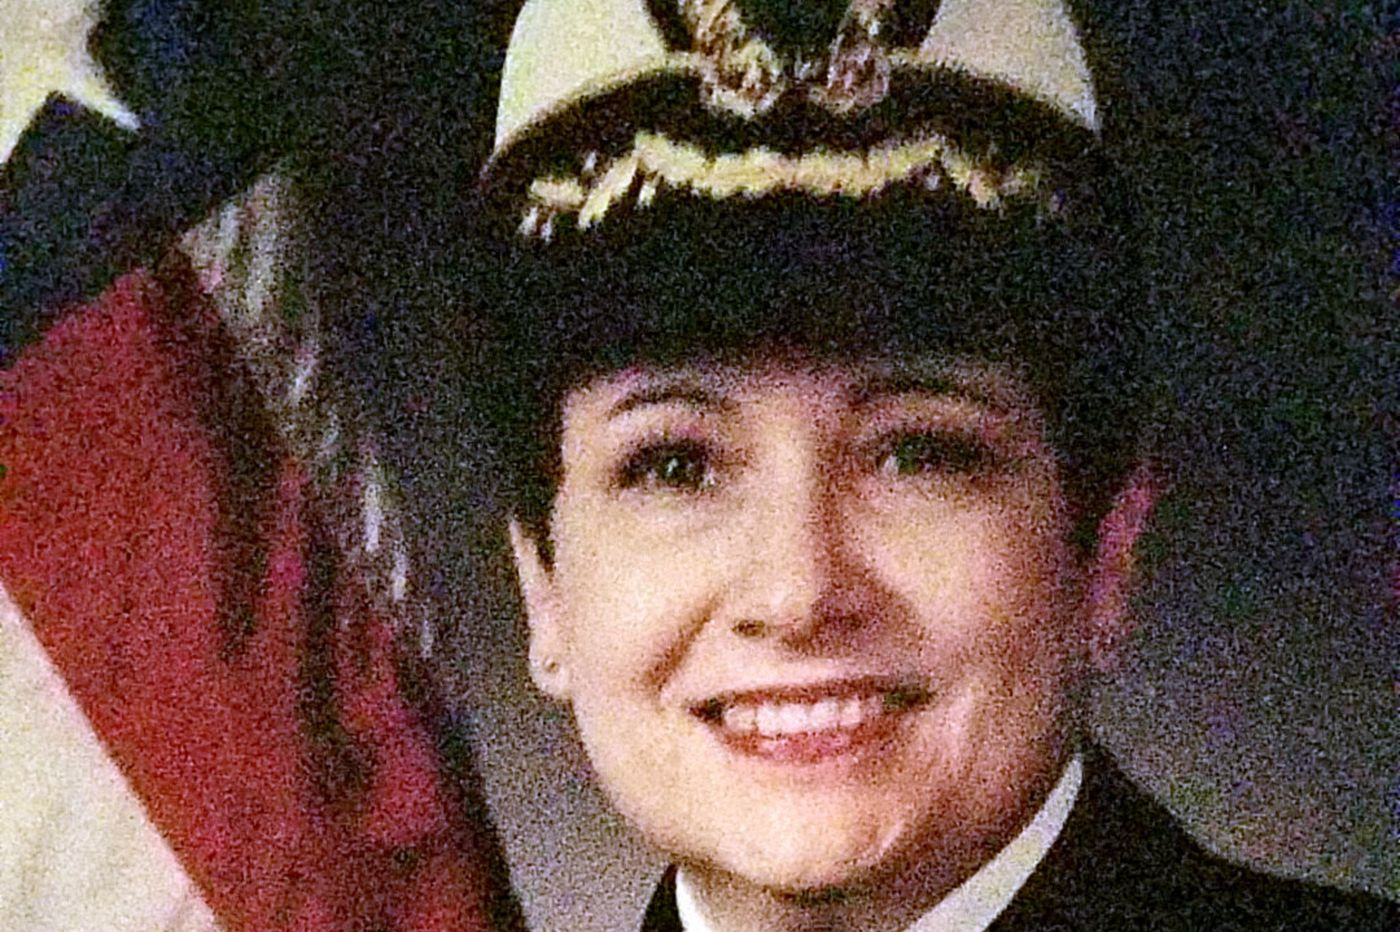 Kathleen Donahue Bruyere, U.S. Navy captain who won the right for women to serve at sea, dies at 76